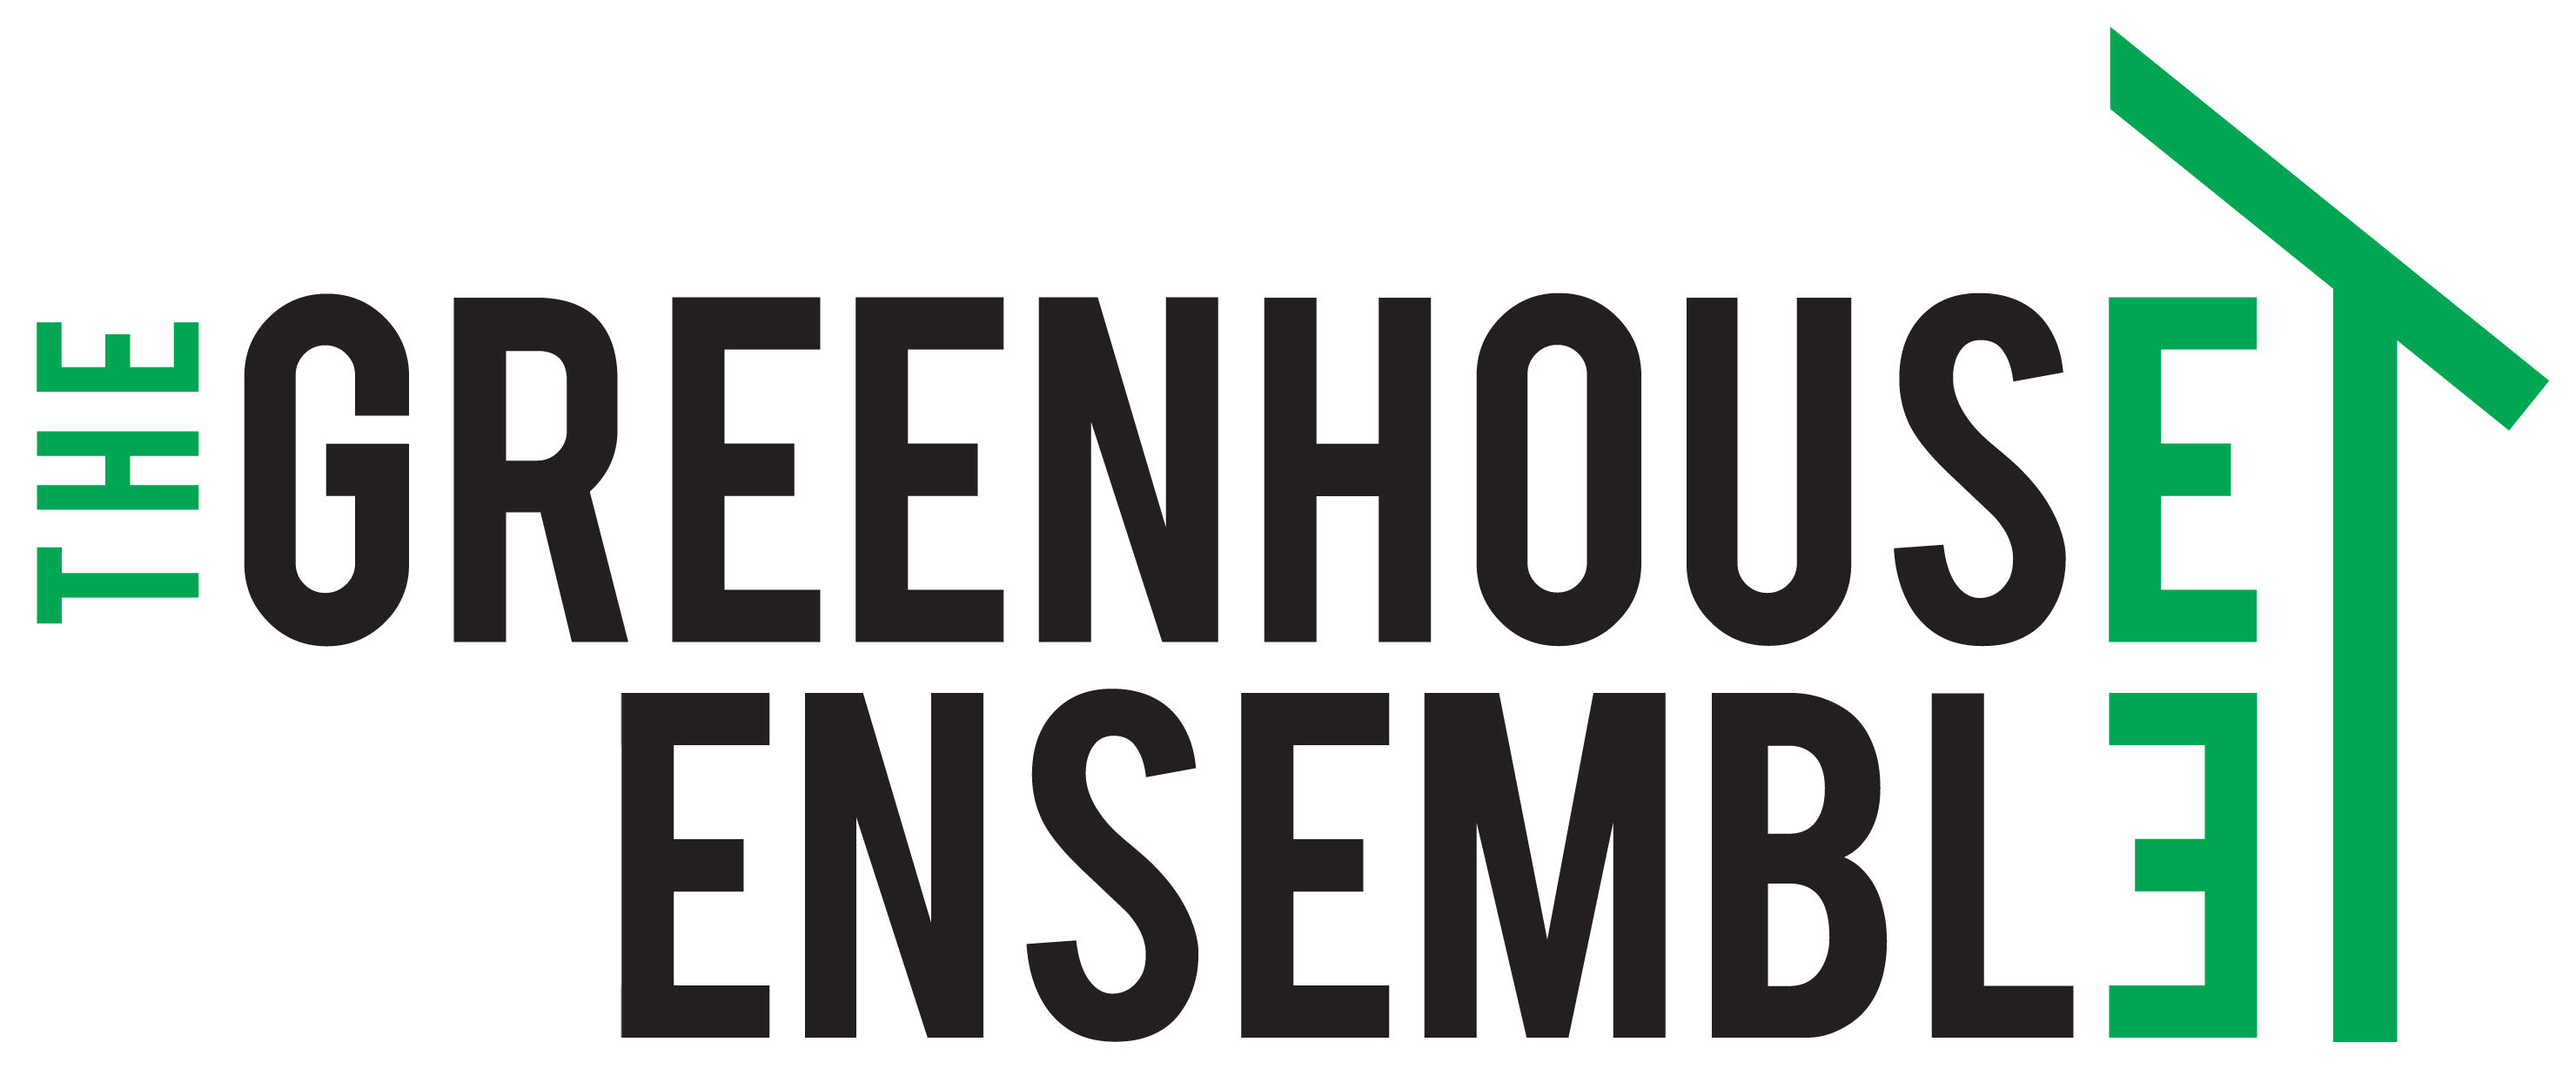 THE GREENHOUSE ENSEMBLE